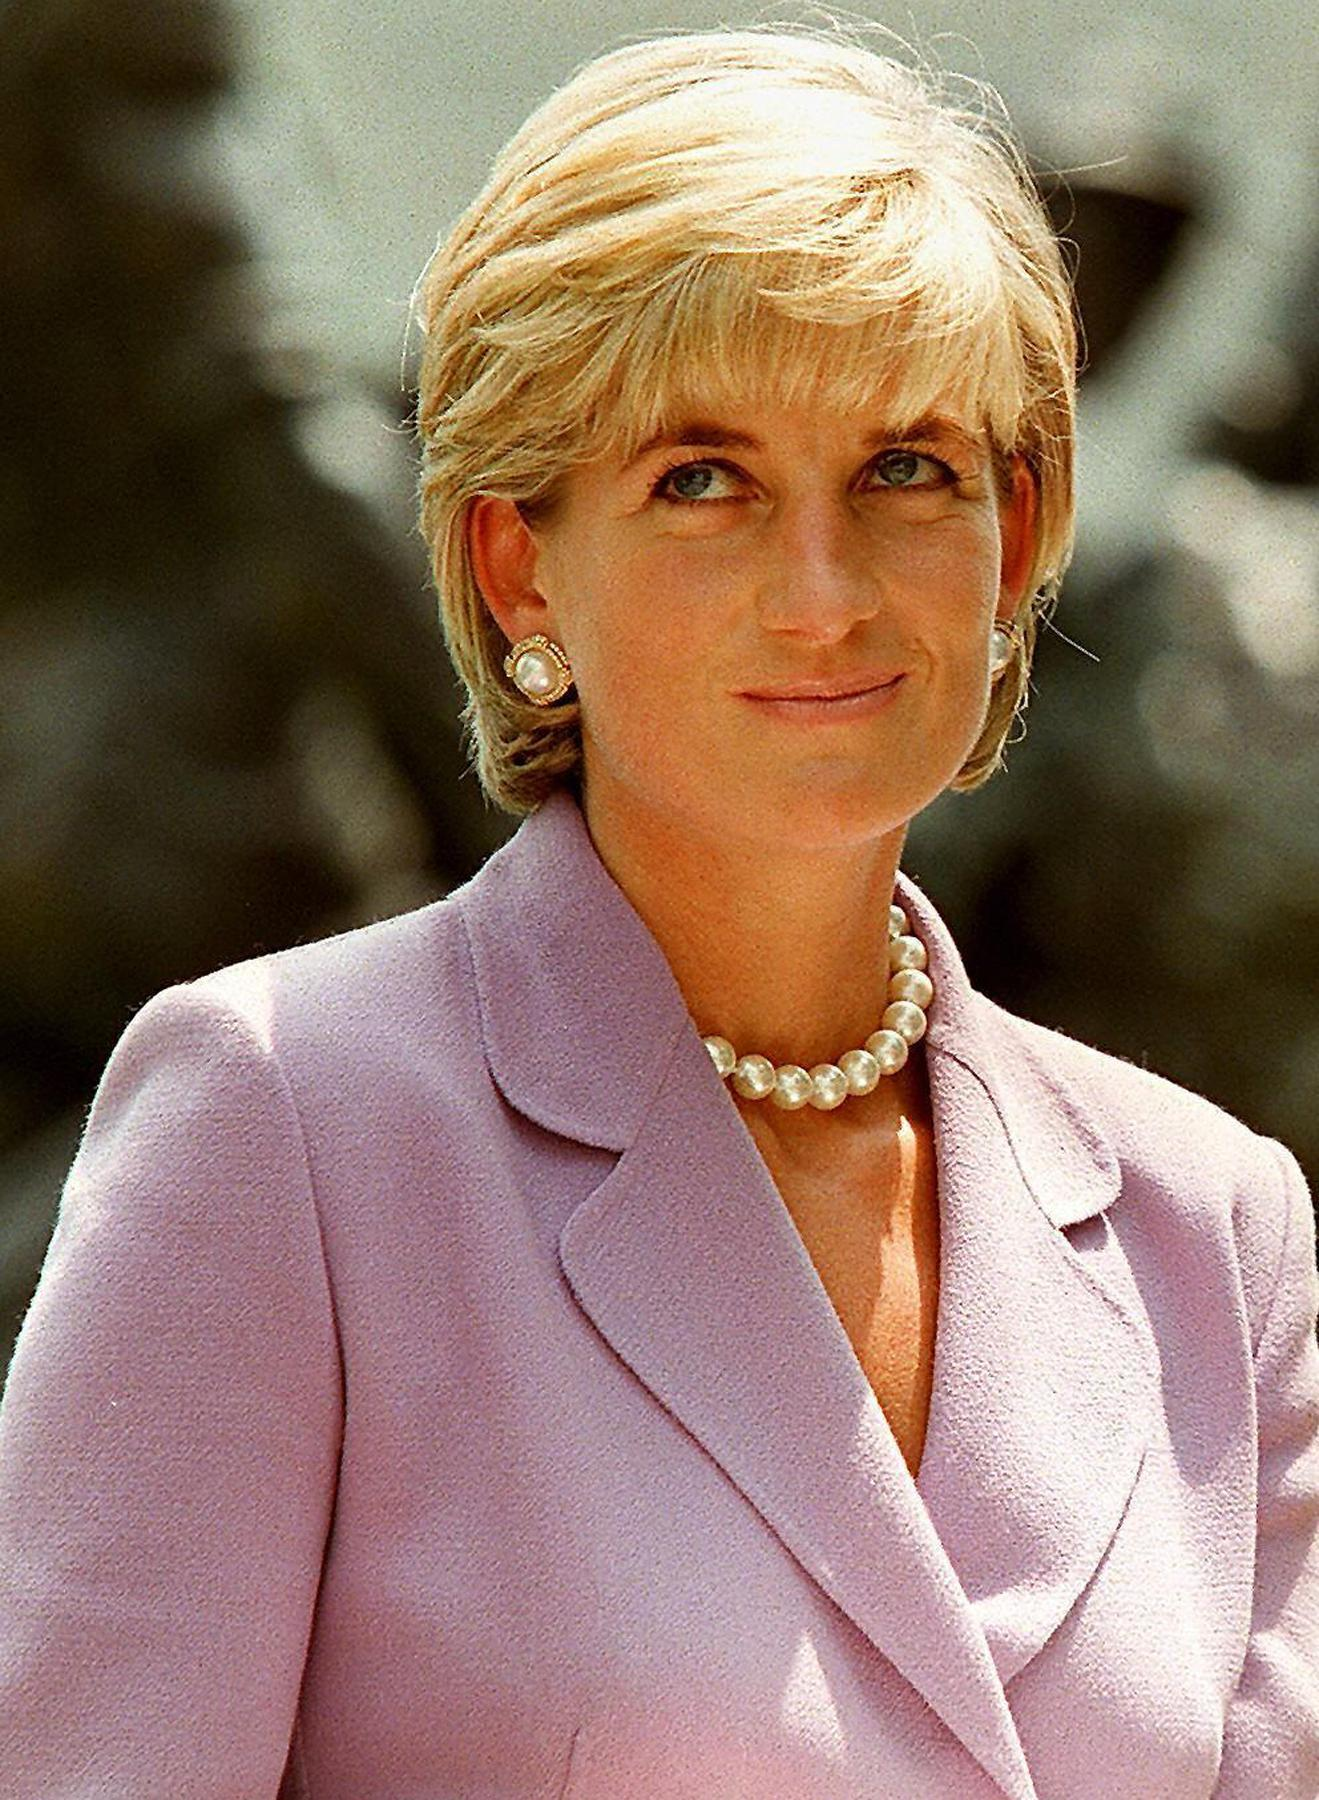 Pictures: Cruise ship godmothers - Princess Diana